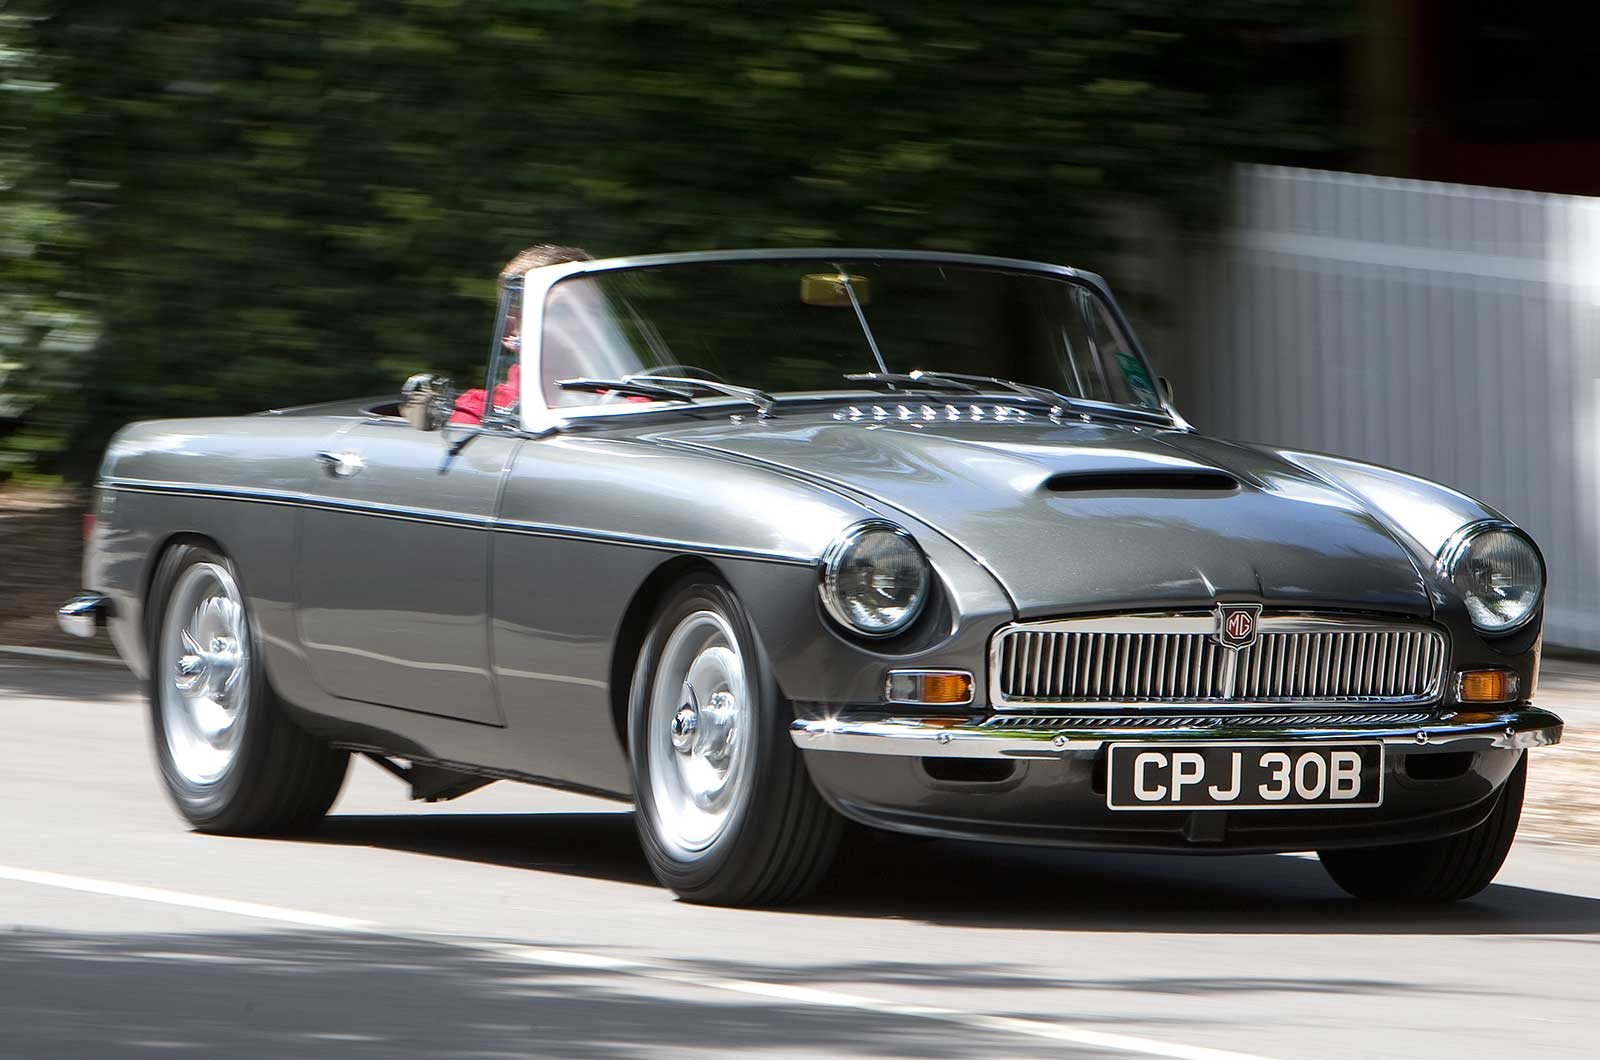 Finding The Best Retro Sports Car For